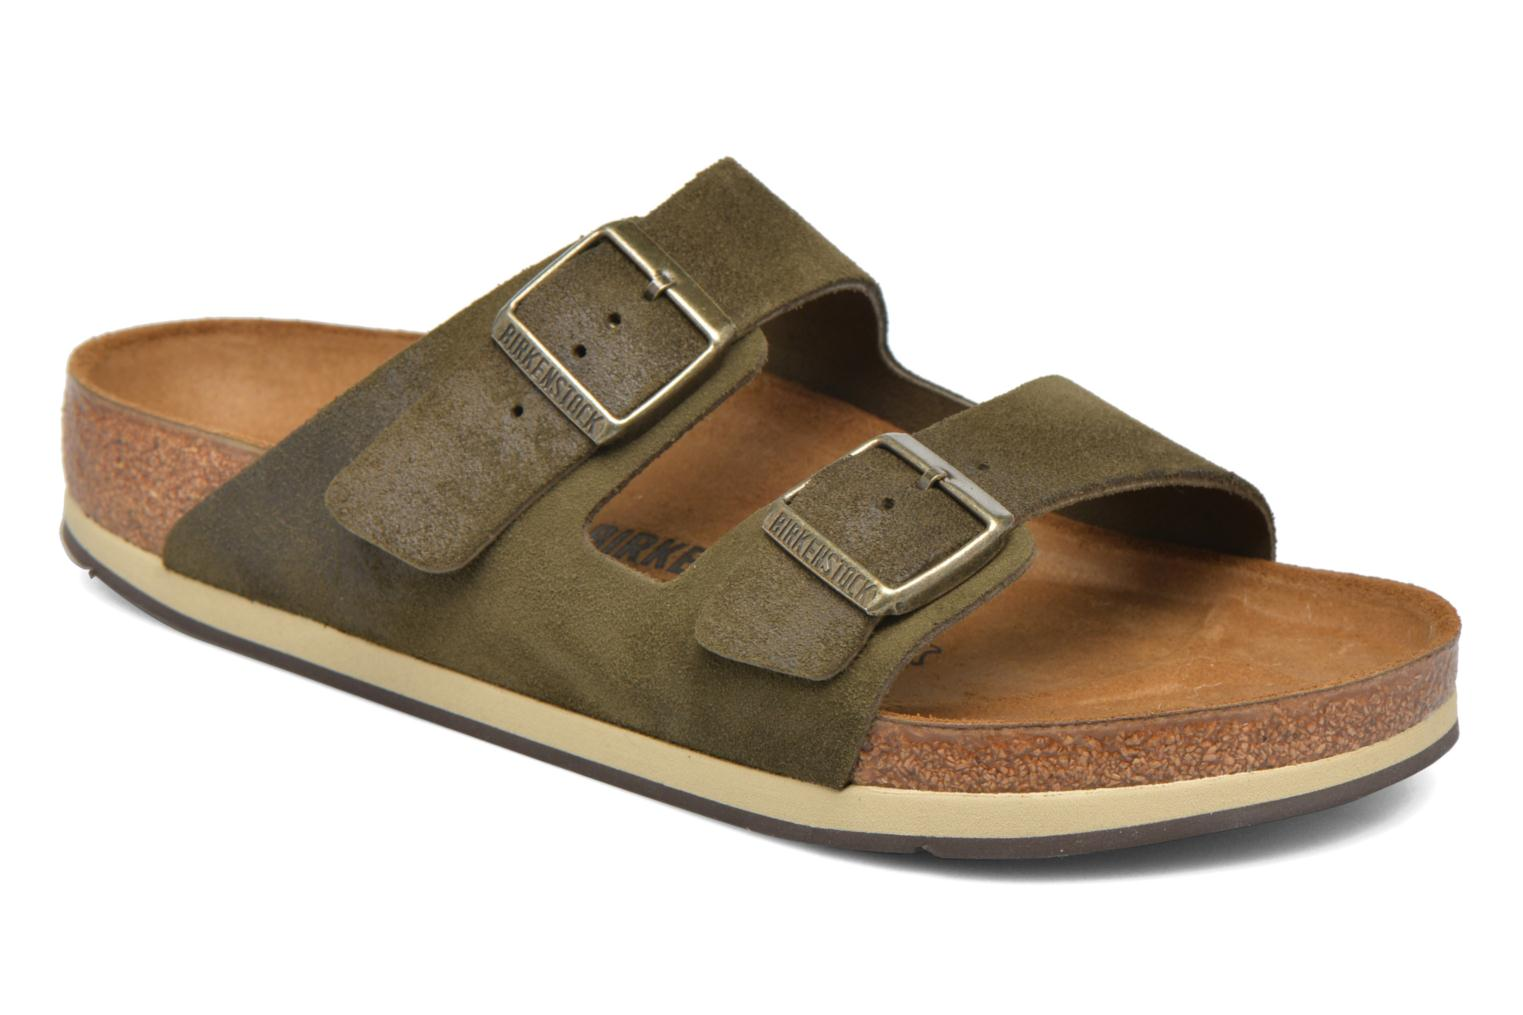 Arizona EVA M Olive Finish (Semelle Softy Comfort)